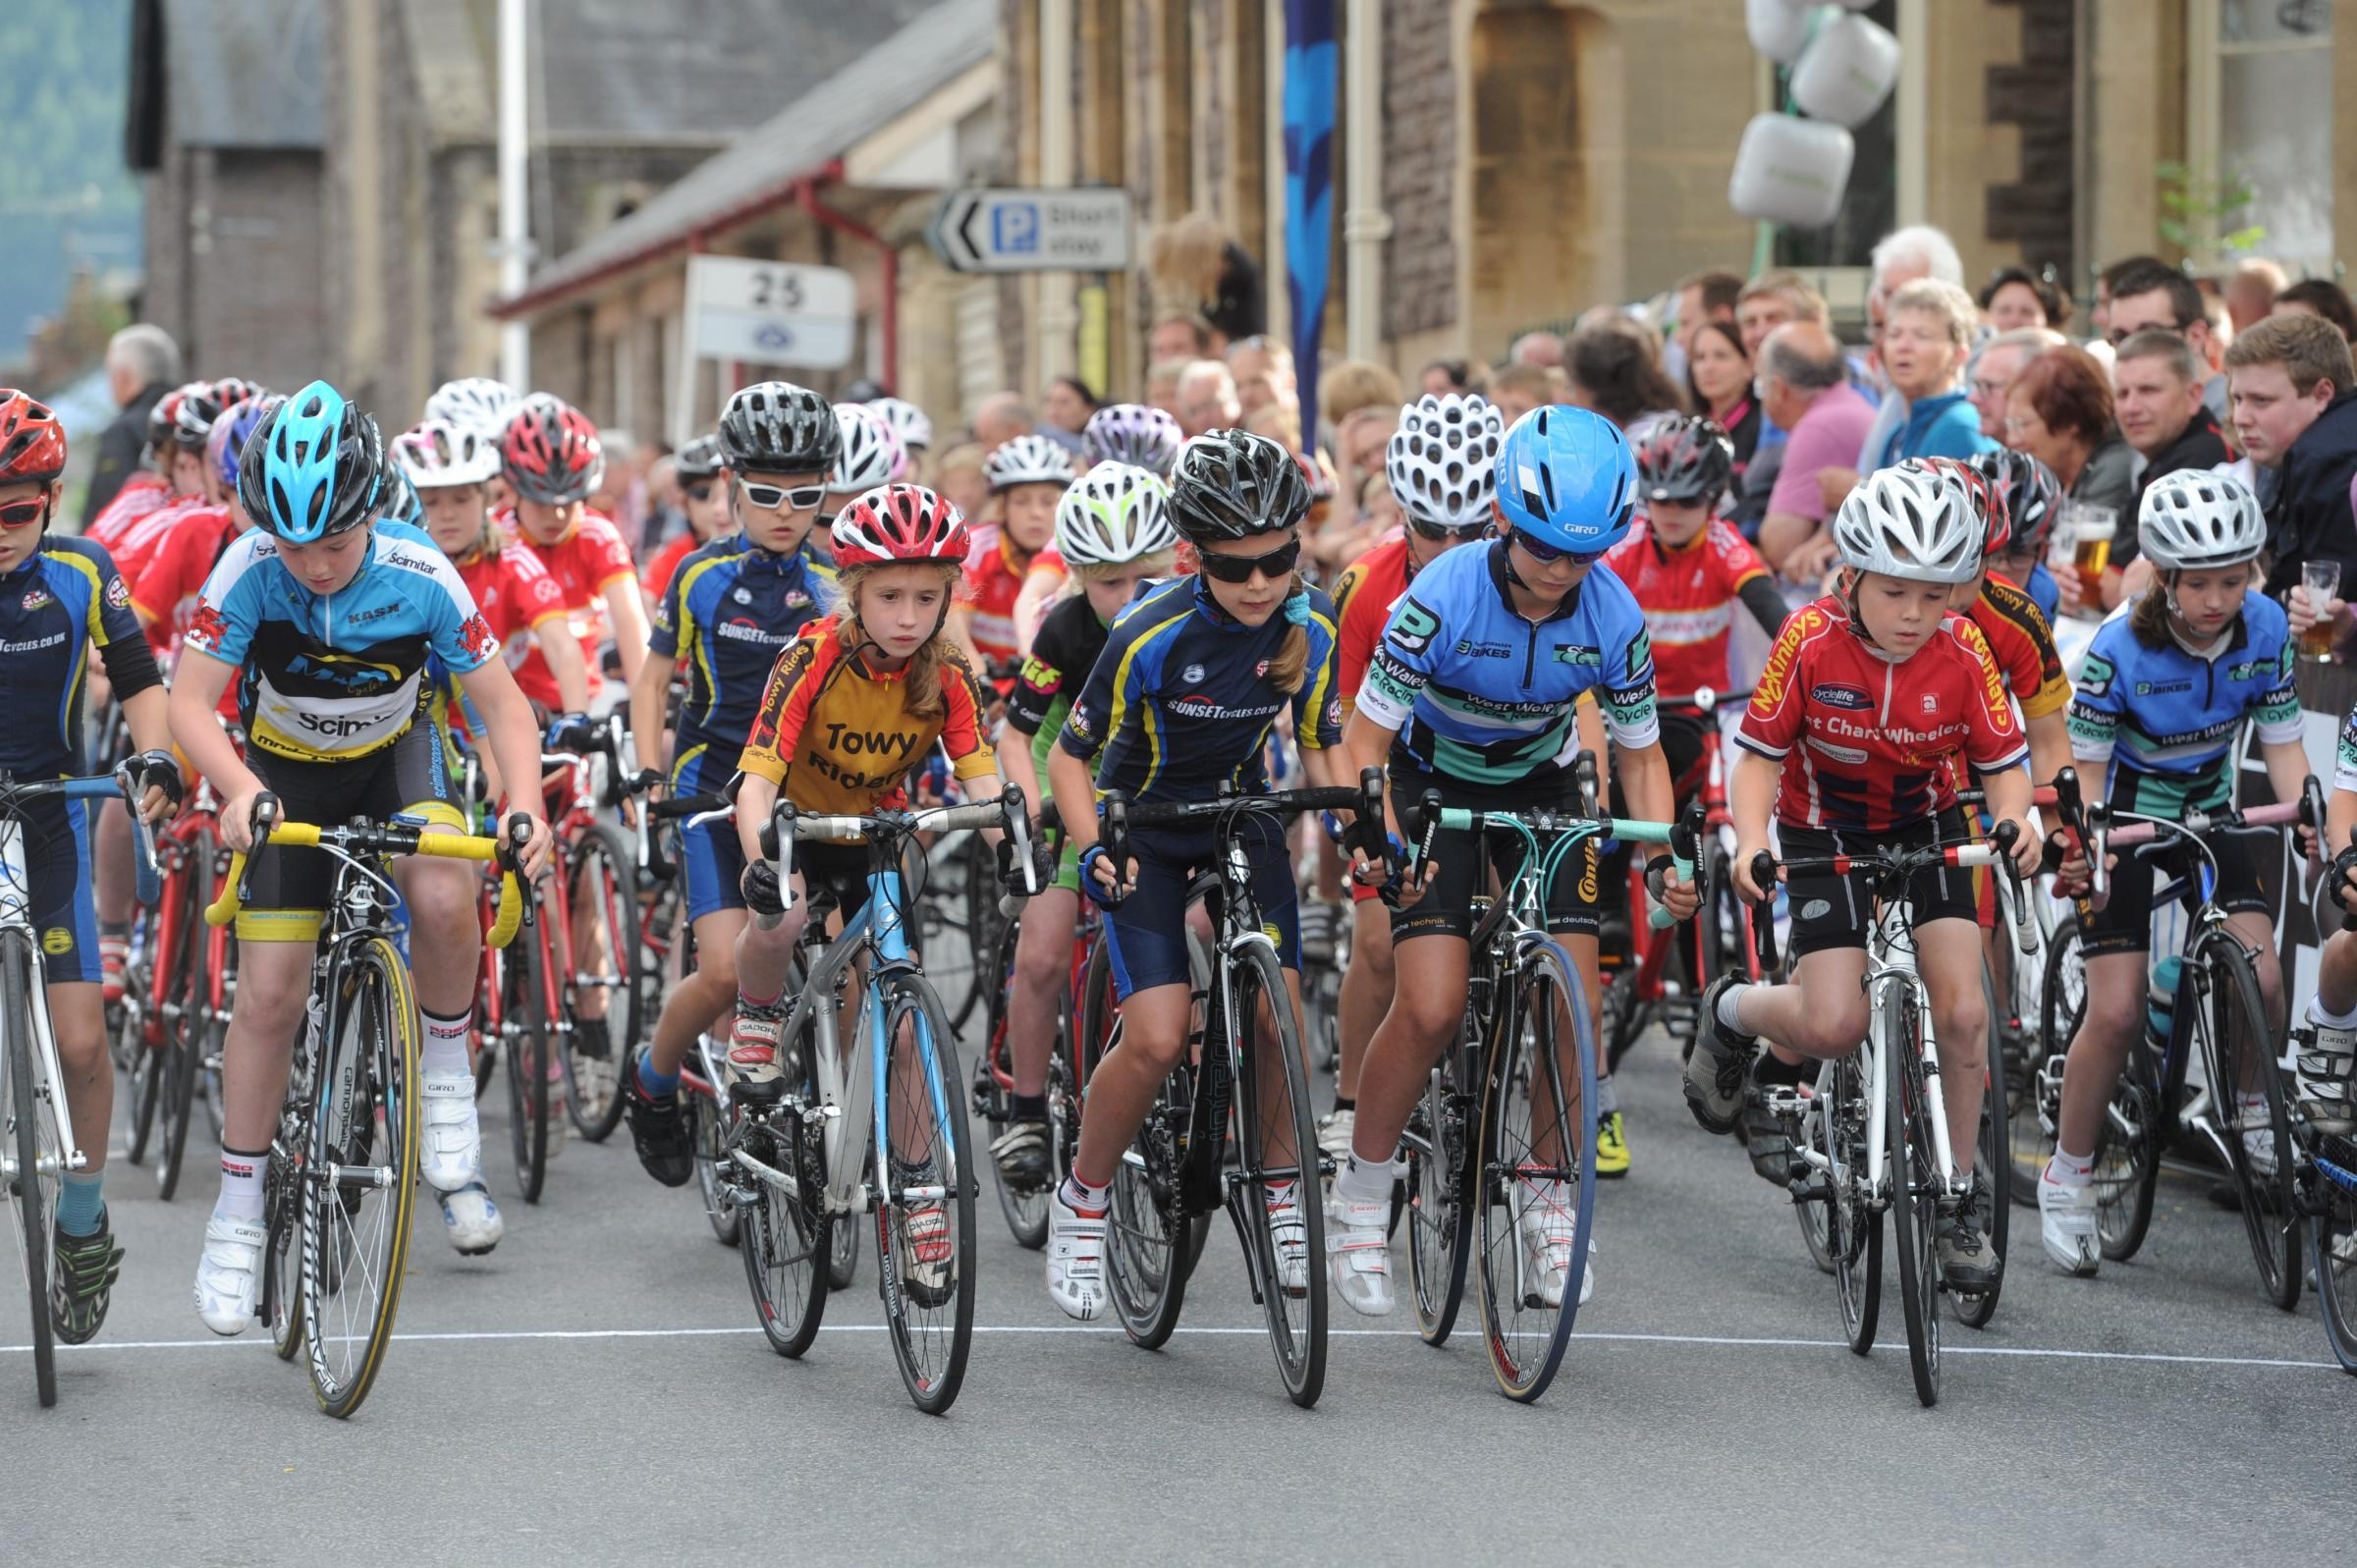 Thousands support cyclists in Abergavenny